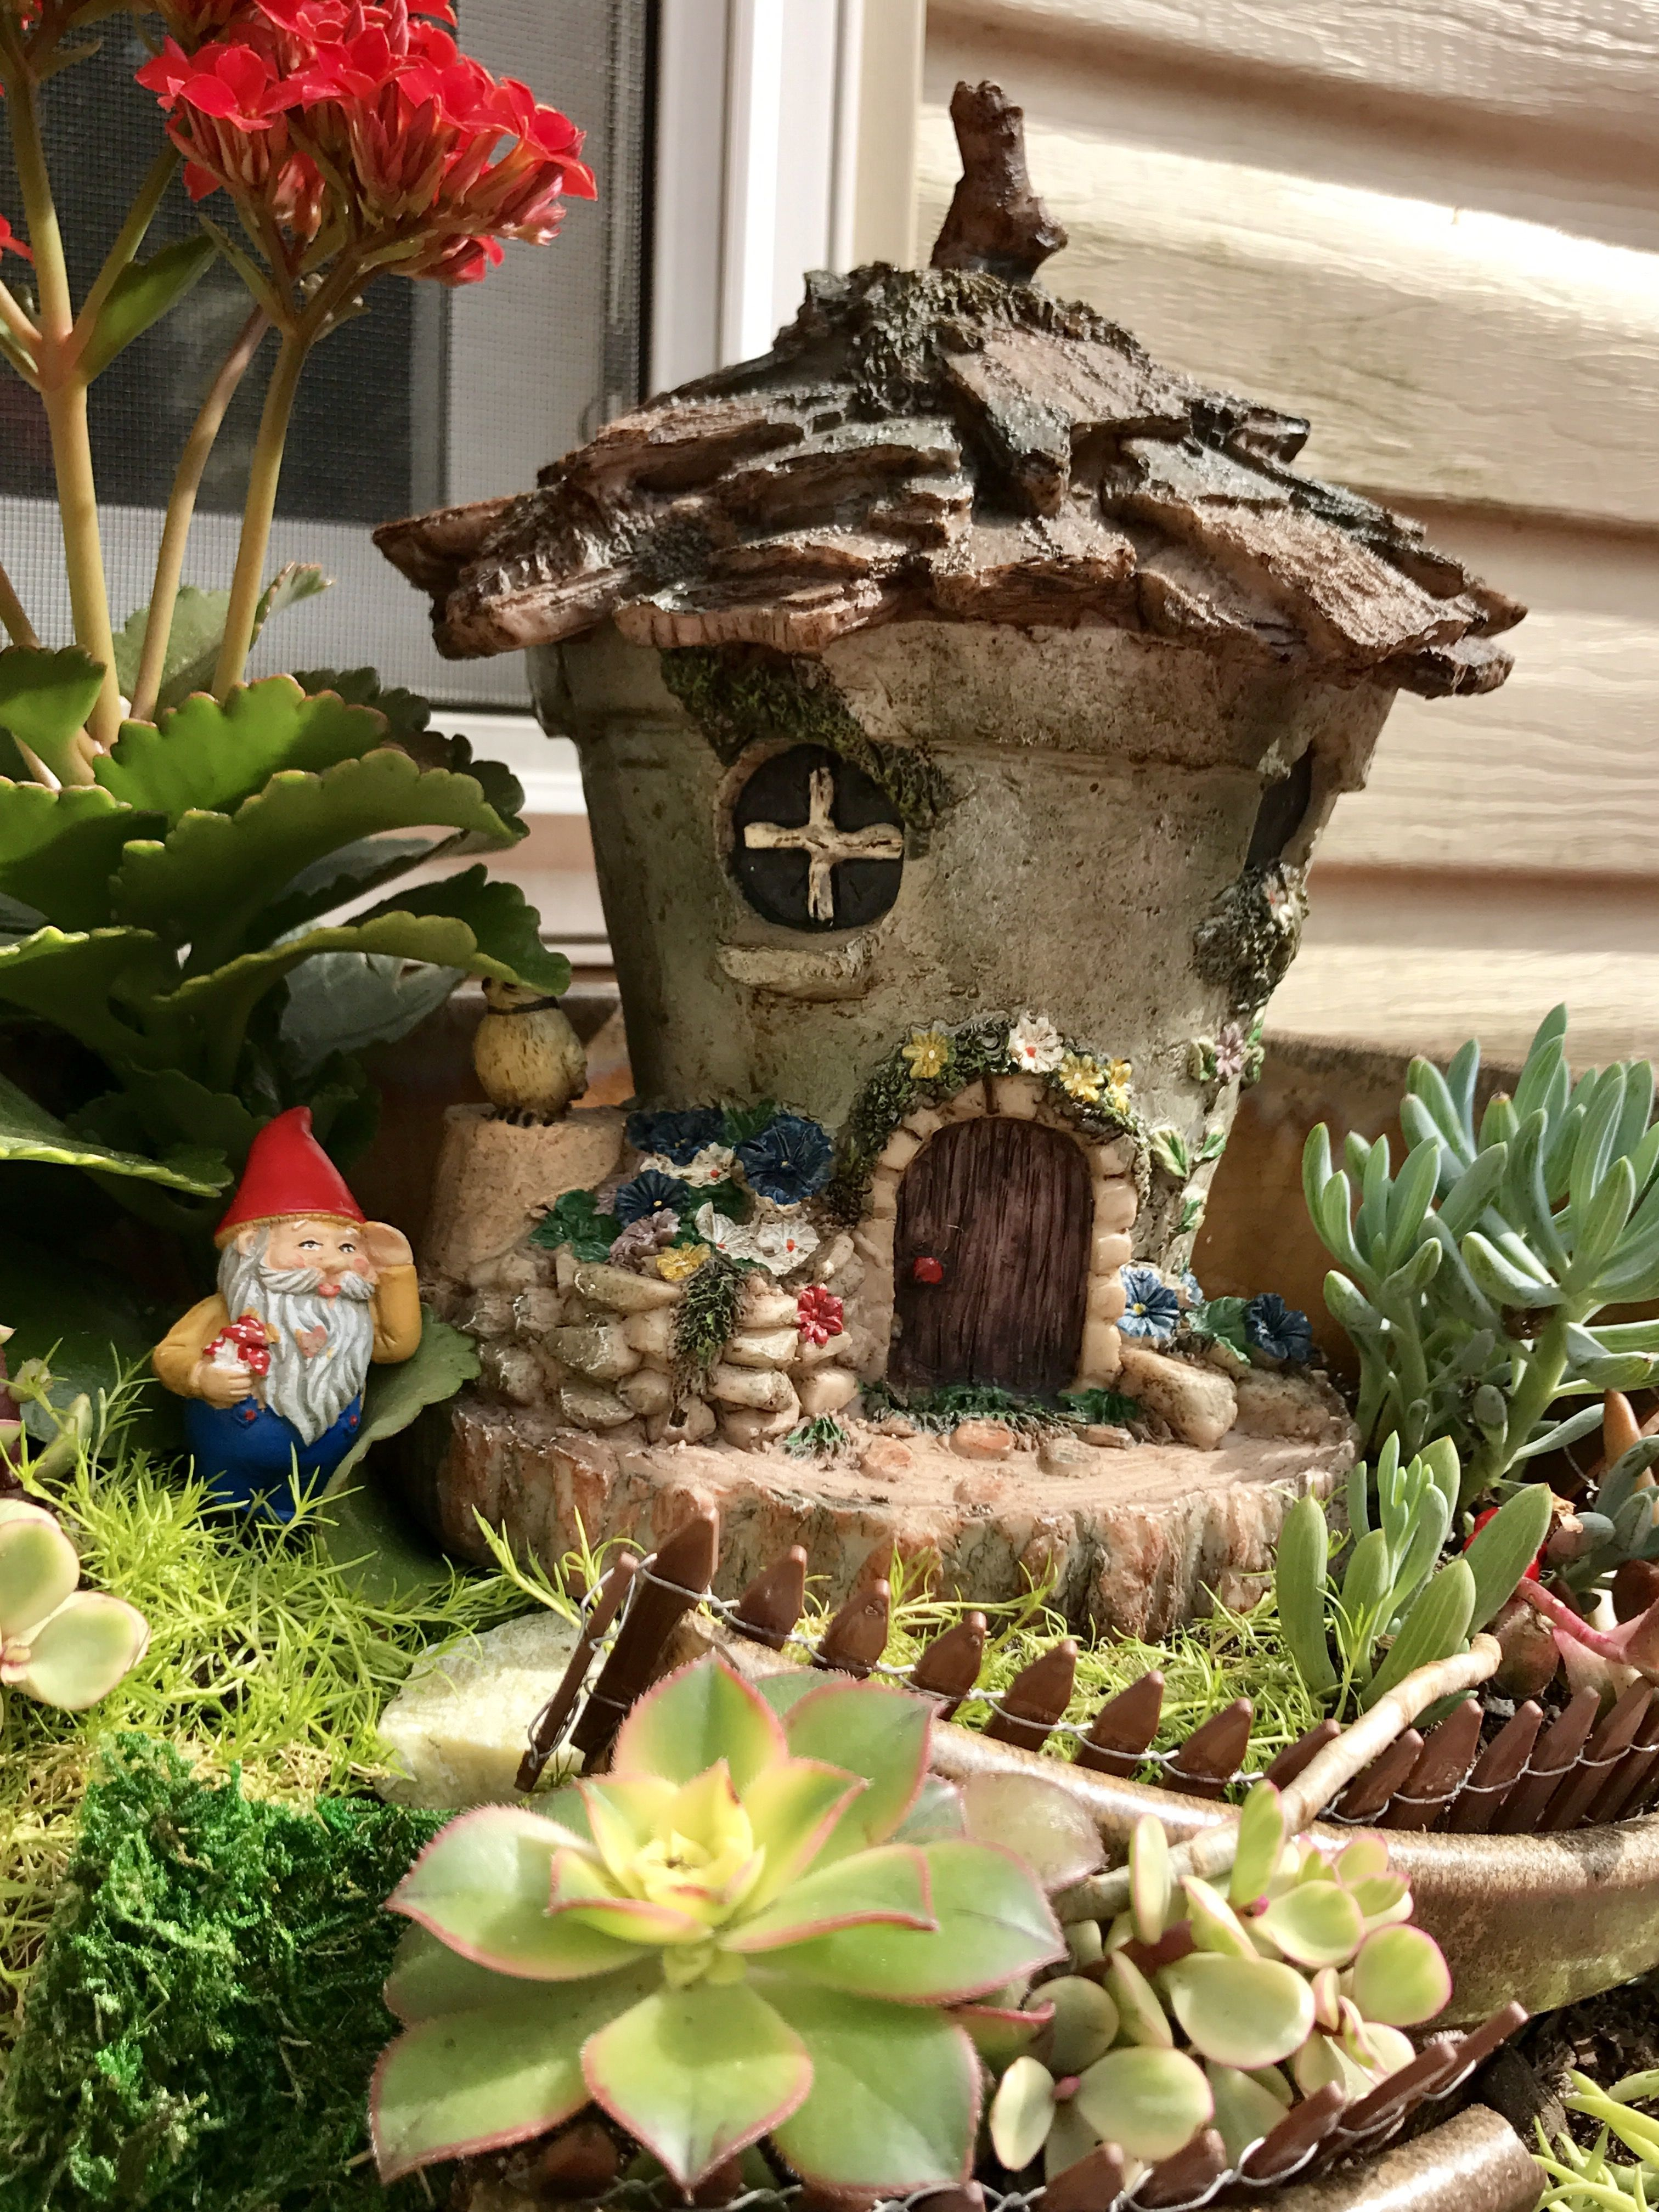 Plante Soleil Direct A Broken Pot Whimsical Garden Used Succulents Plants Only So